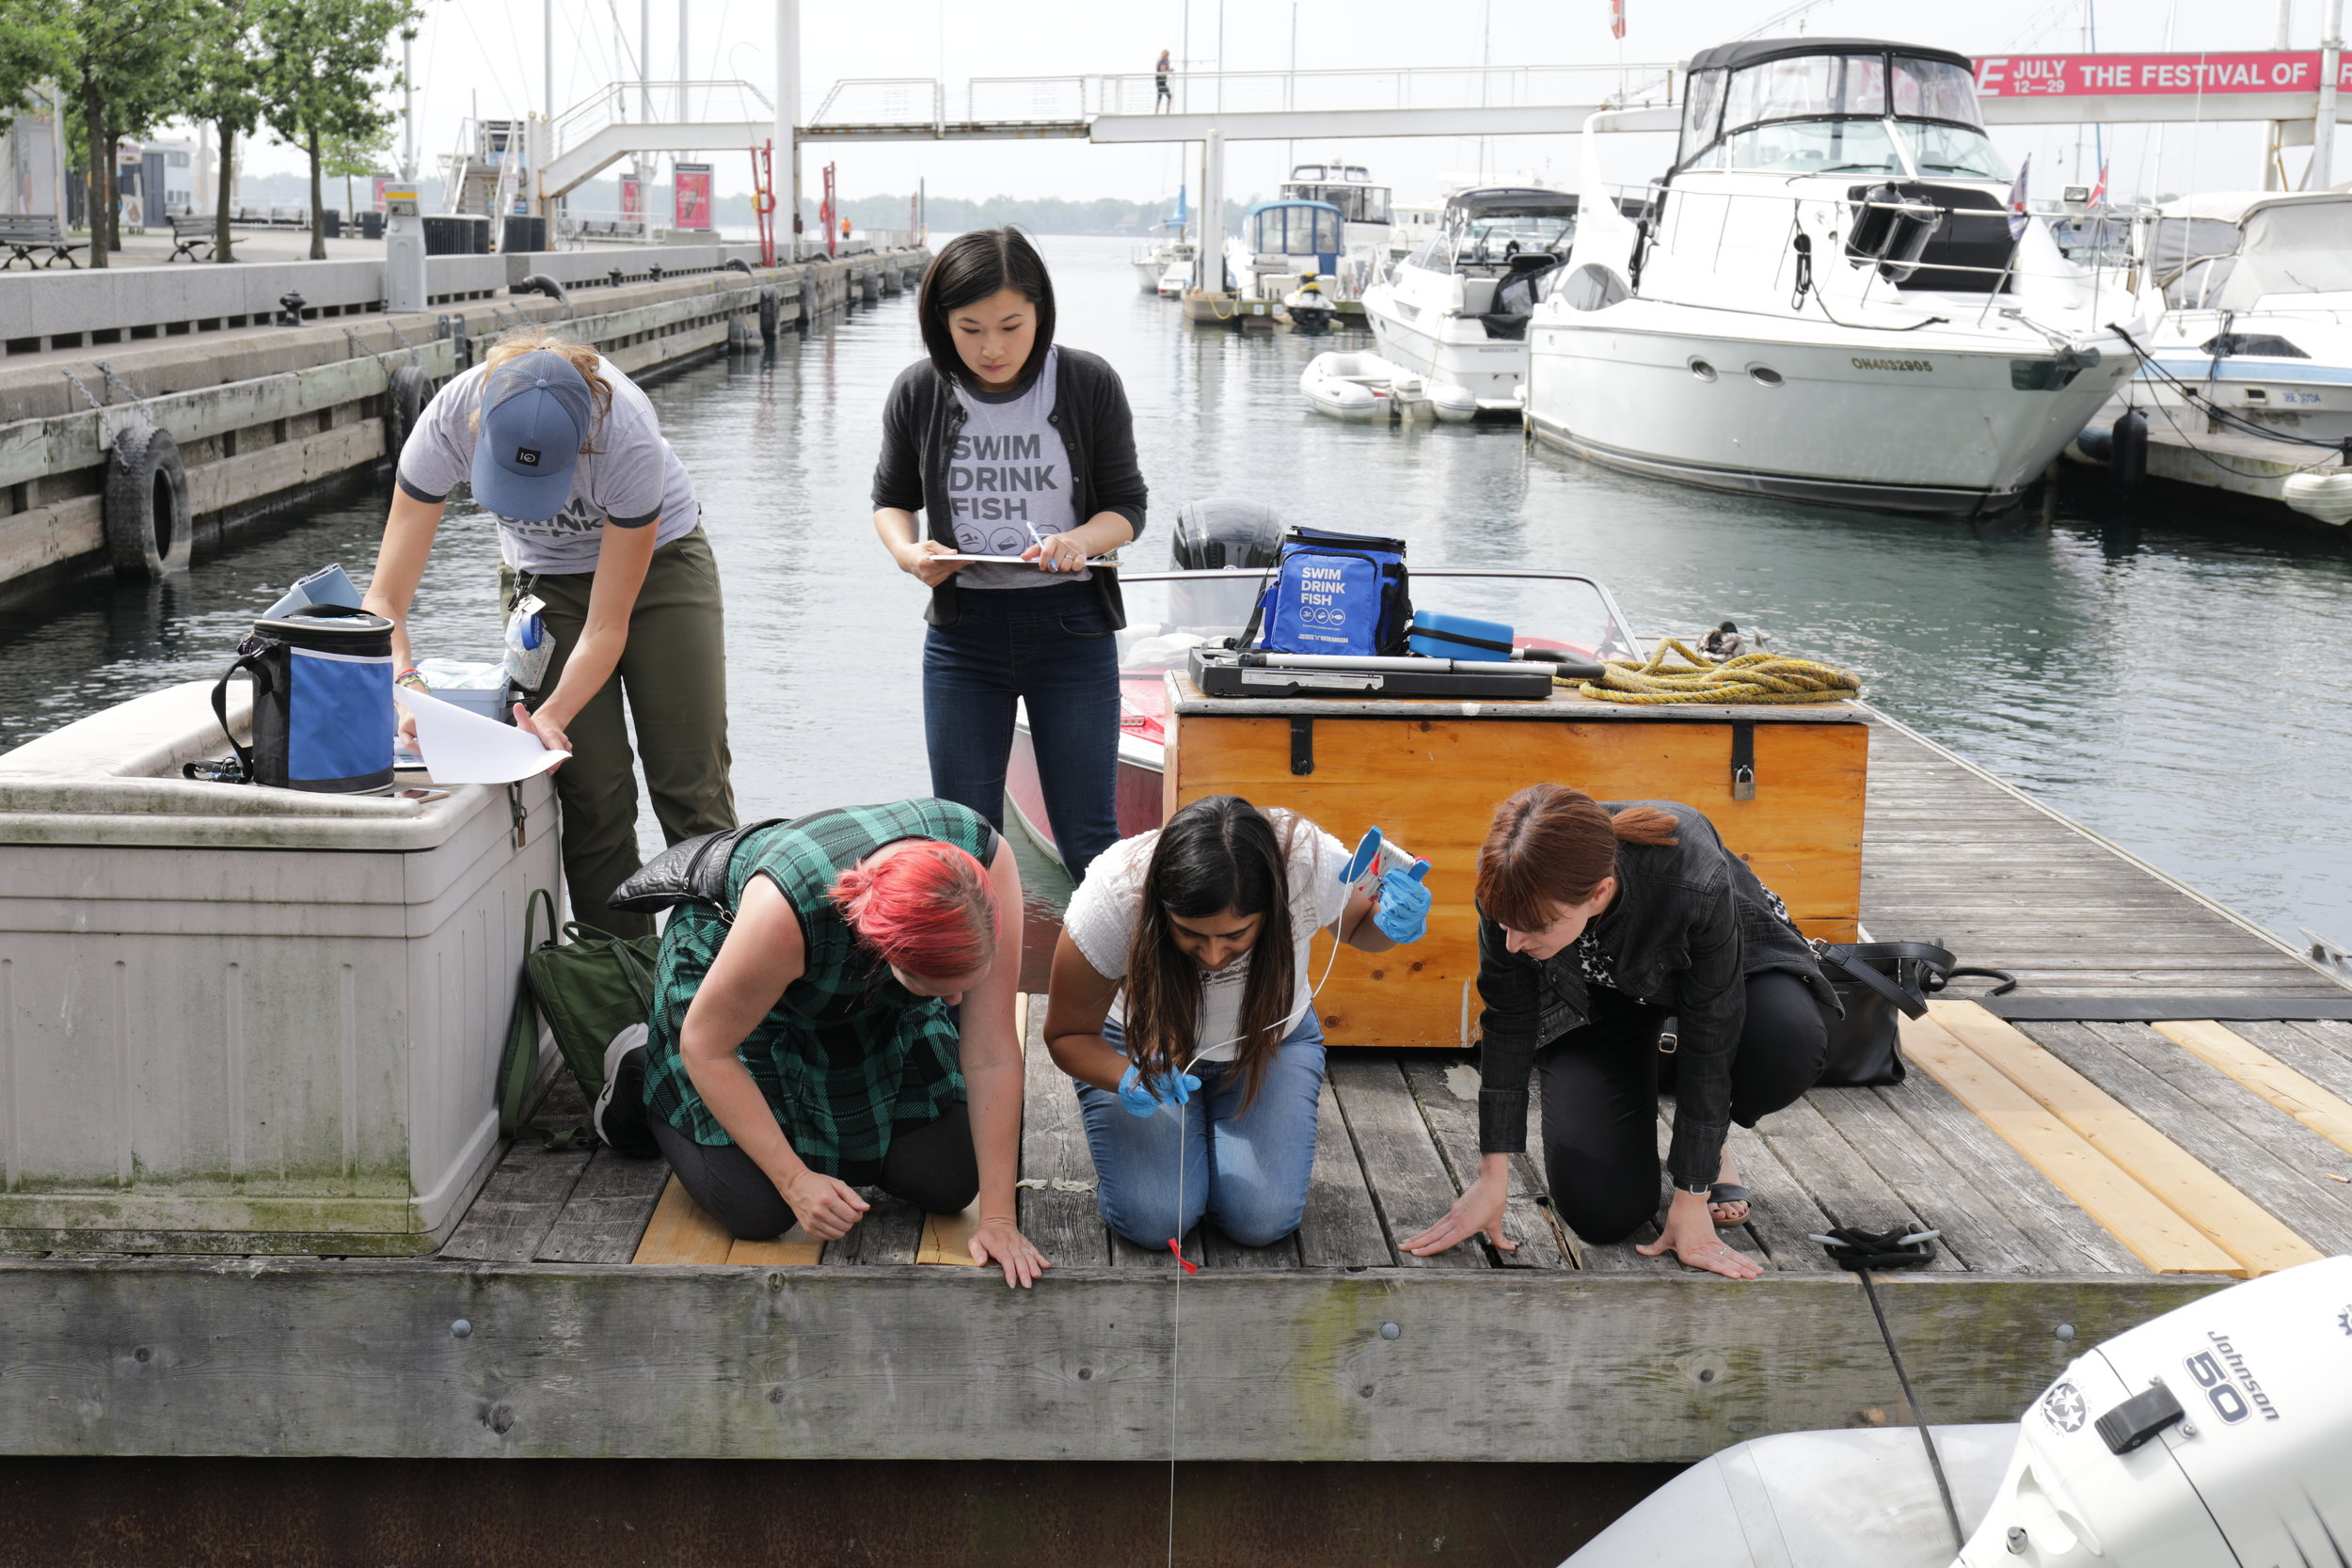 Swim Drink Fish staff and citizen scientists monitoring in the Toronto Harbour